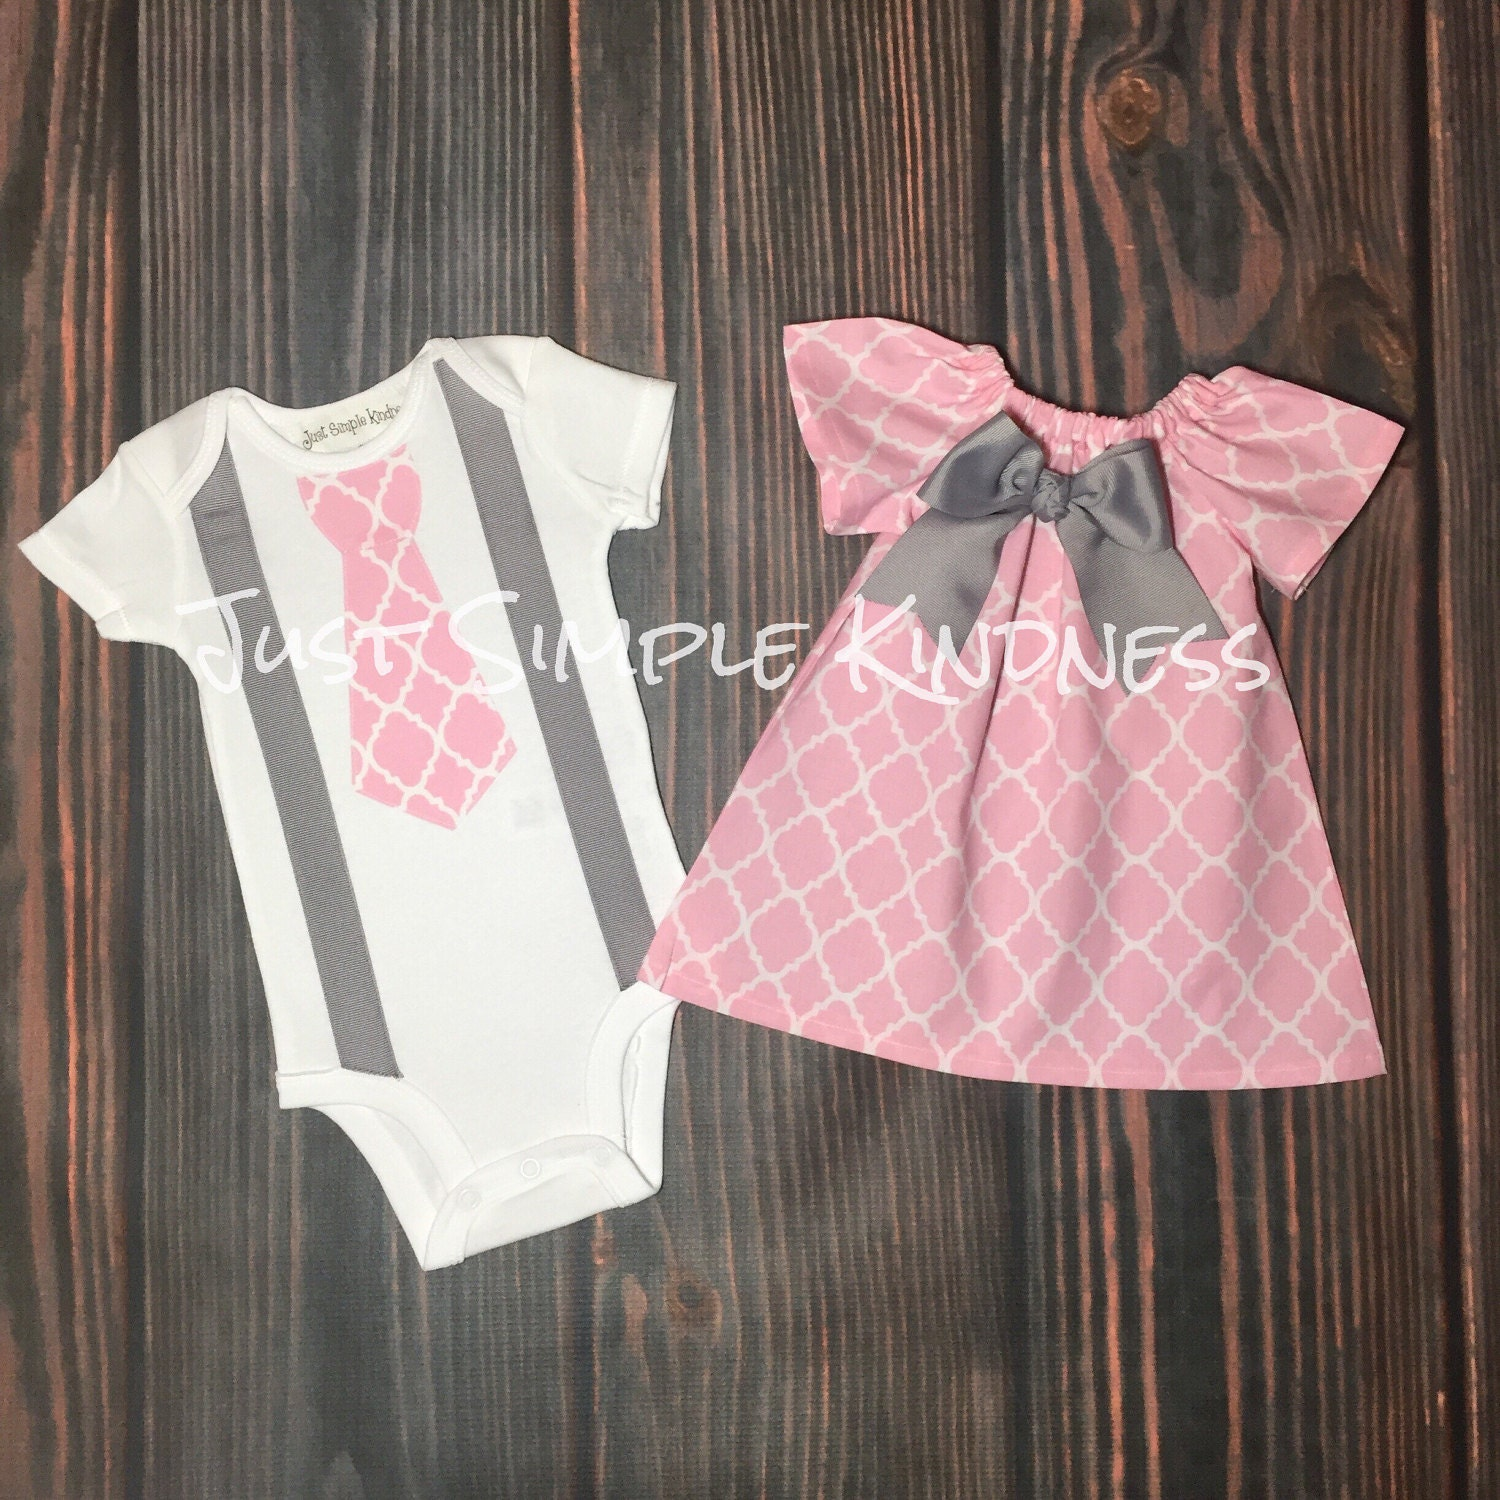 Baby Boy Amp Baby Girl Twin Outfit Easter Outfit Twin Outfit